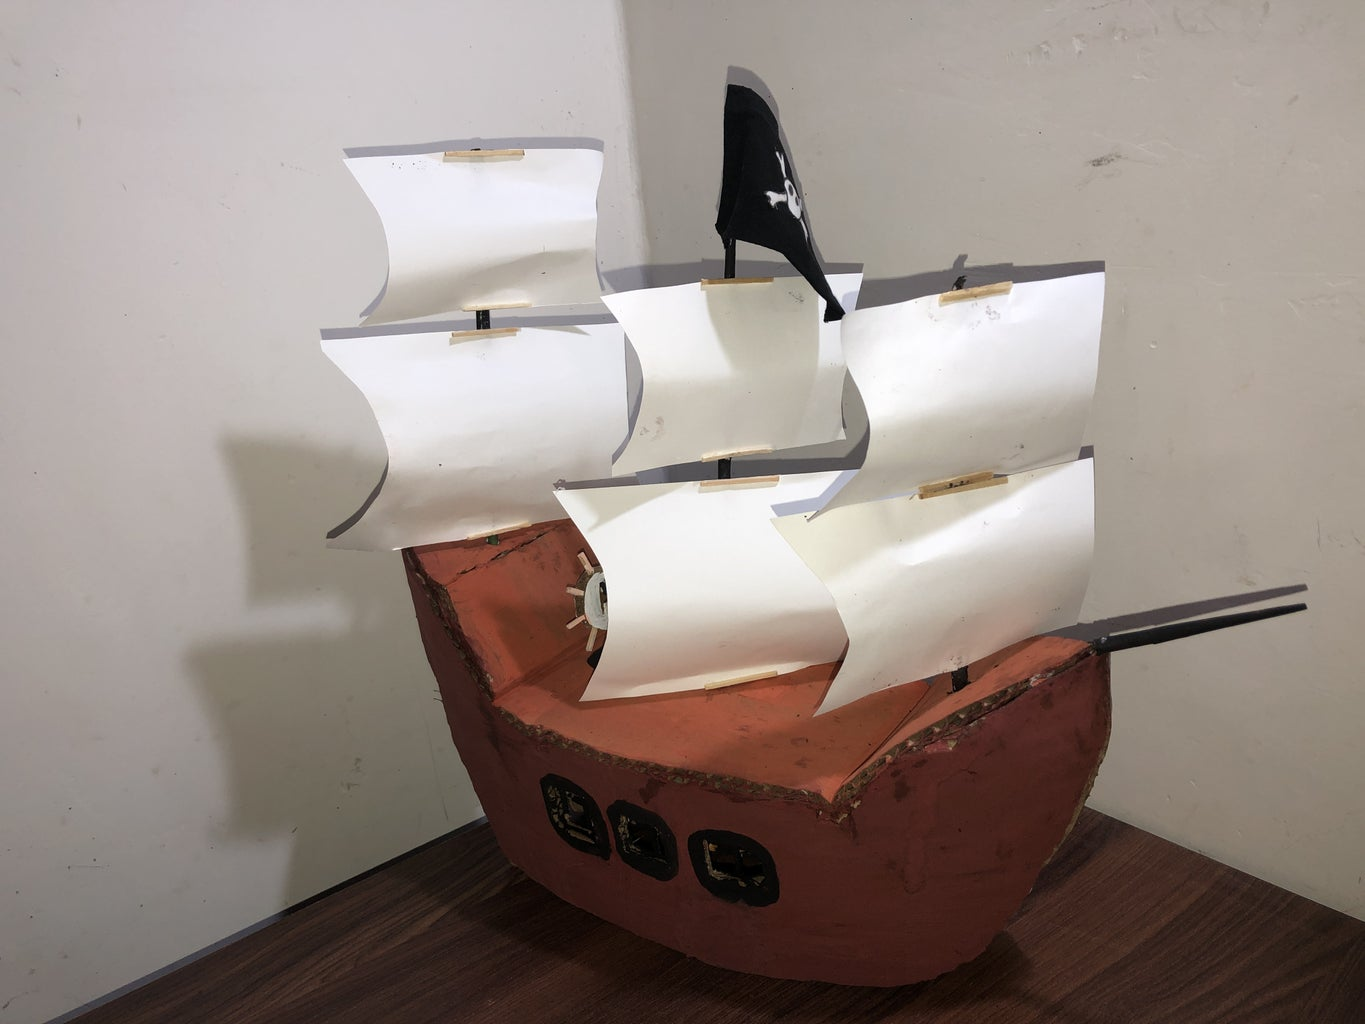 Coloring the Boat and Pasting the Sails and Stick